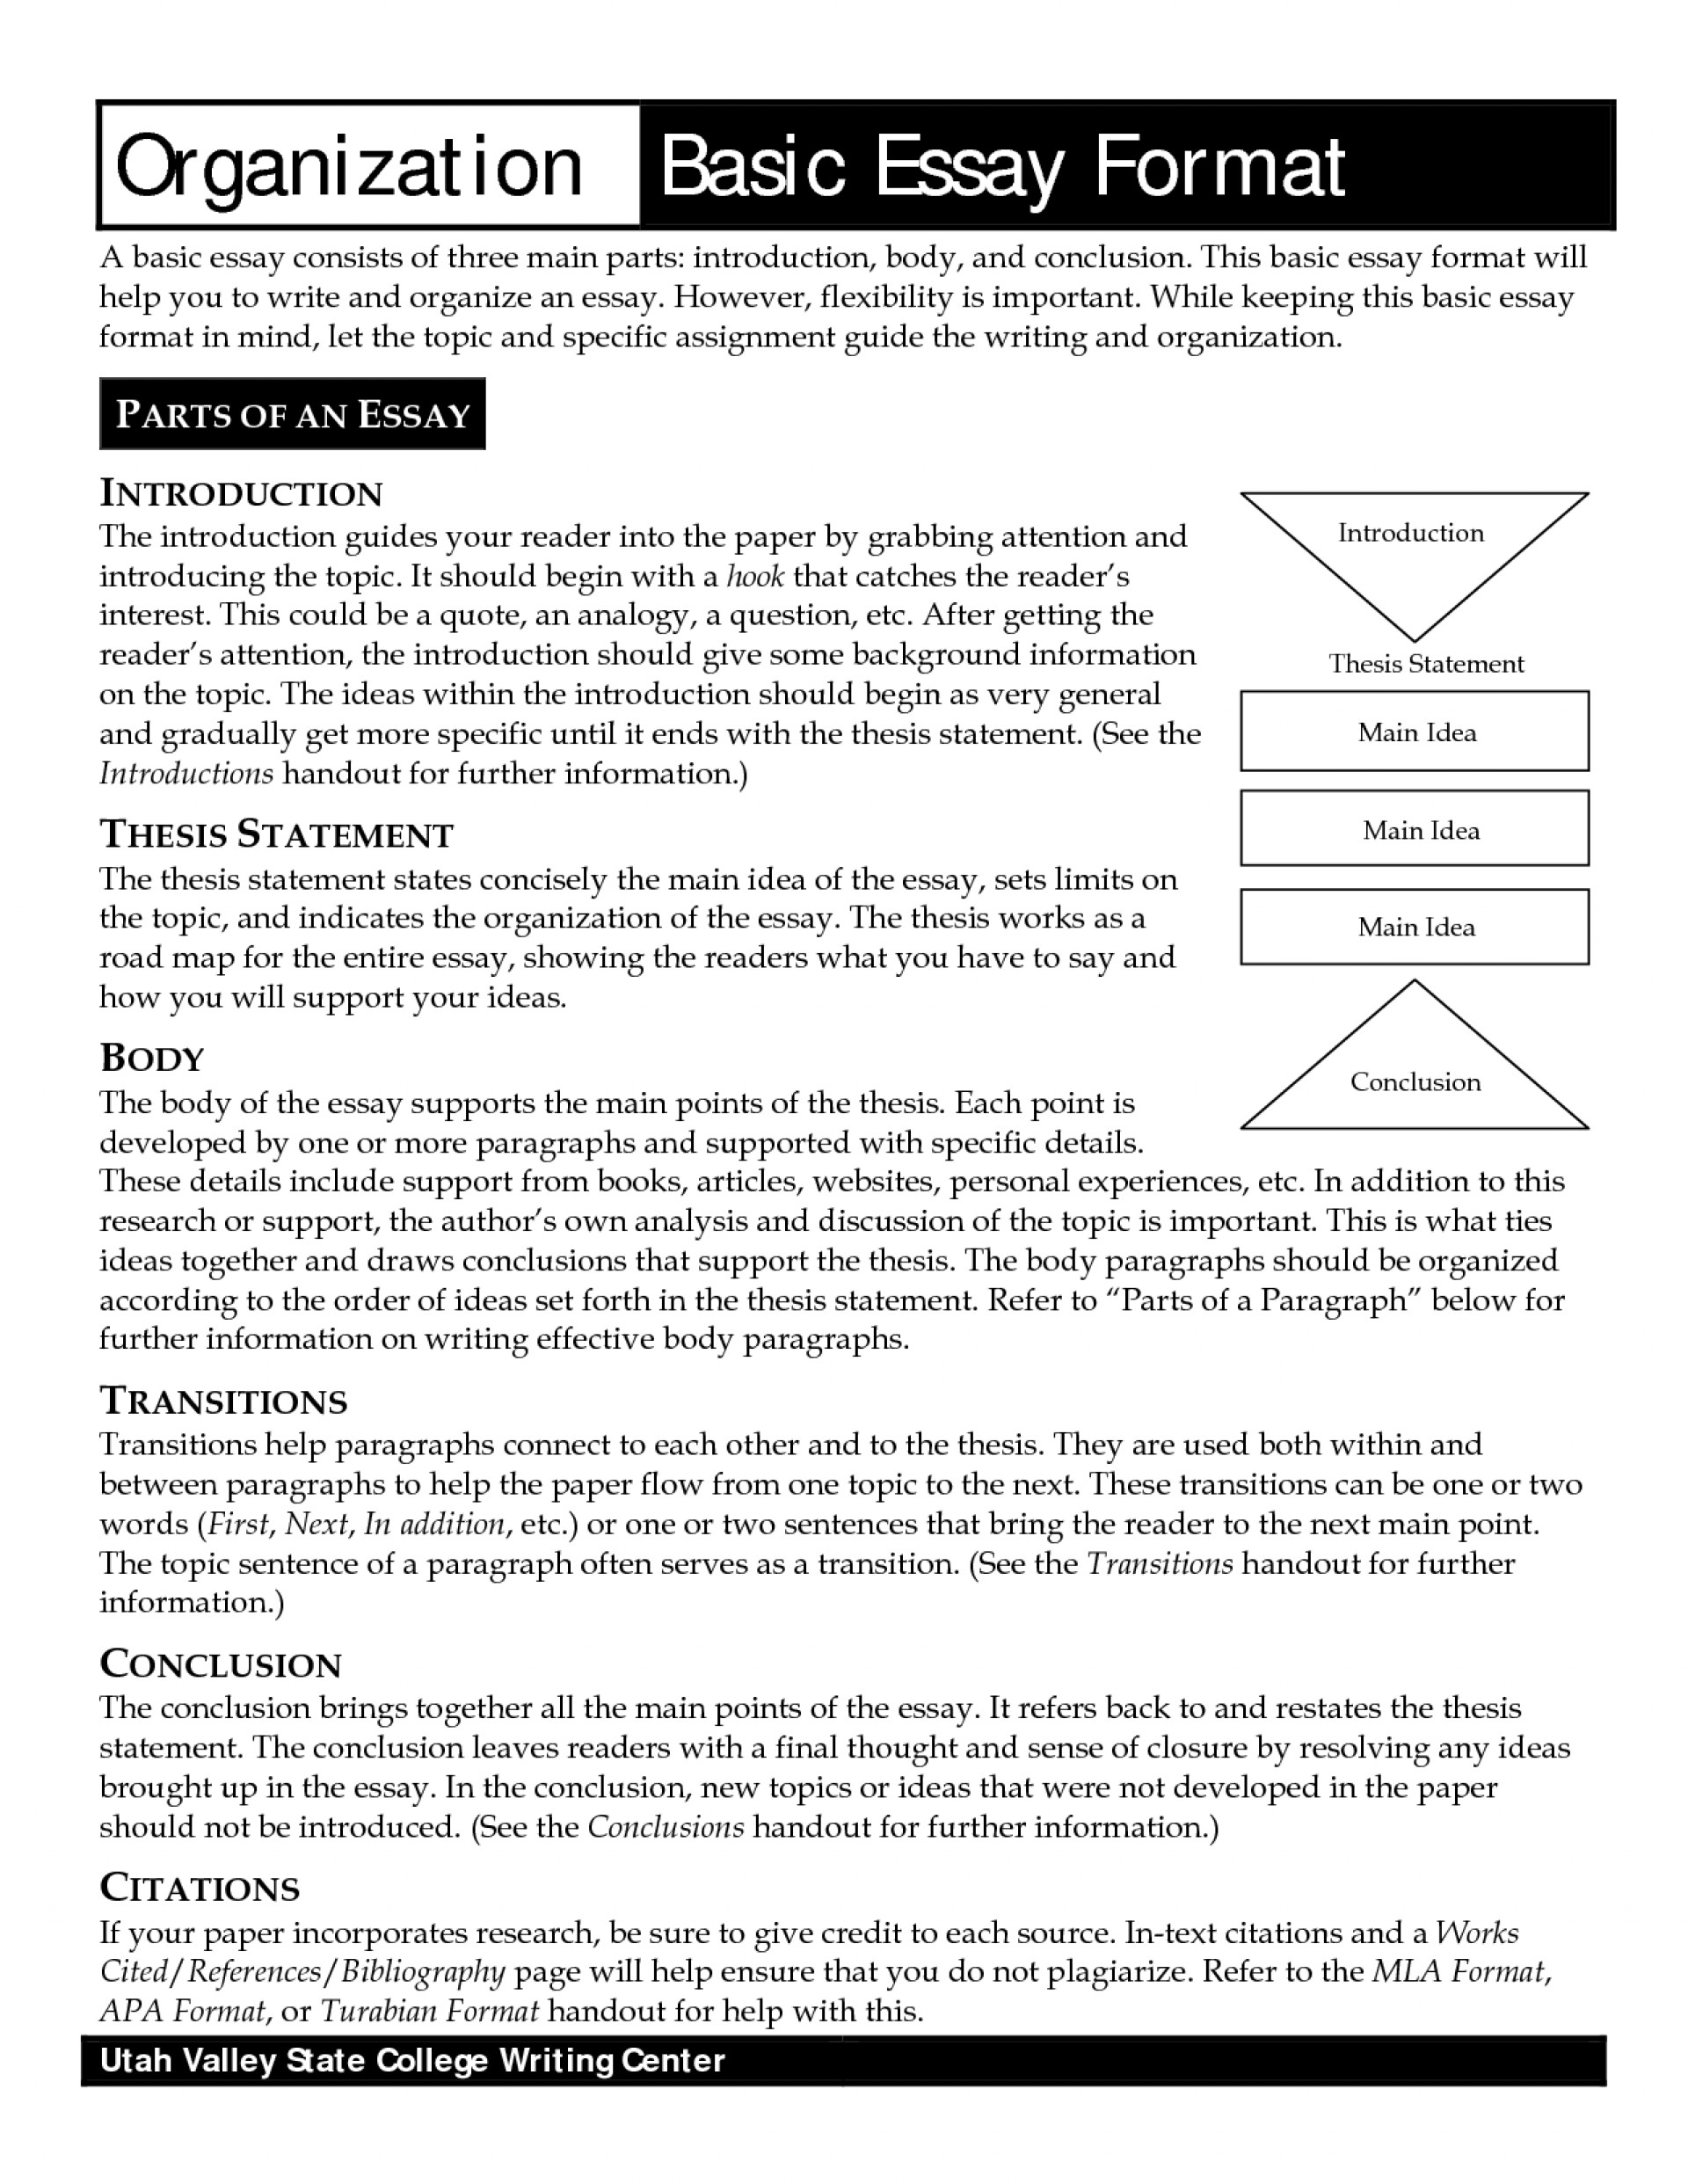 017 Standard Essay Format Get Online Example Write An Surprising Argumentative Sample In Which You State And Defend 1920